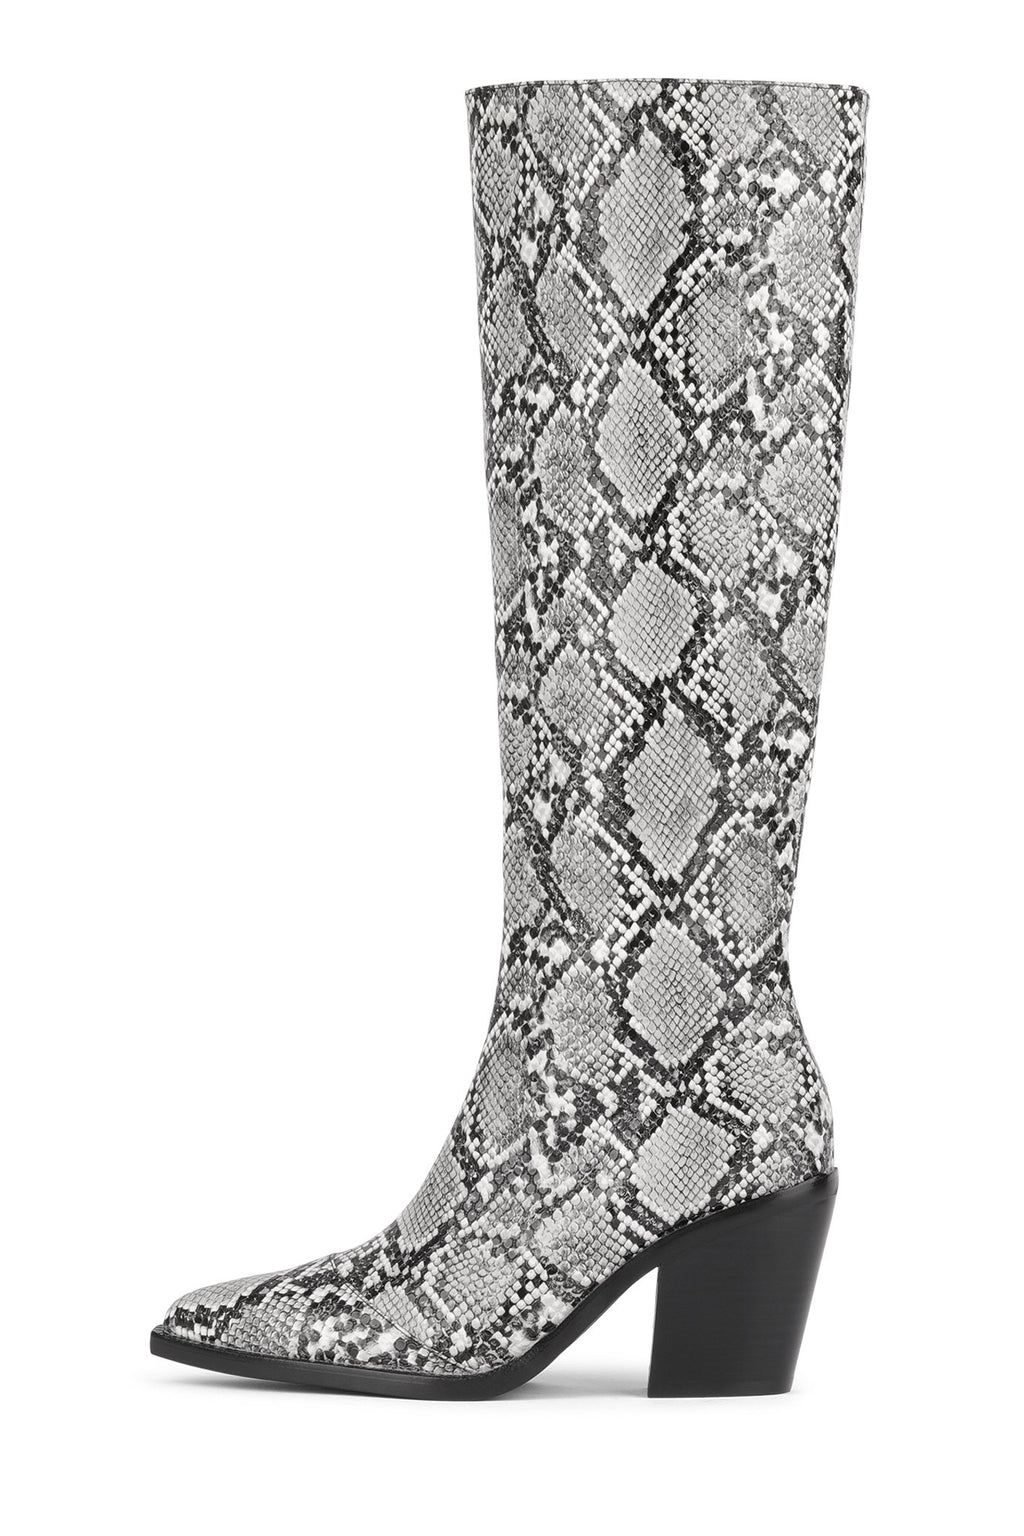 RUMOURS-NB Knee-High Boot YYH Grey Snake 6